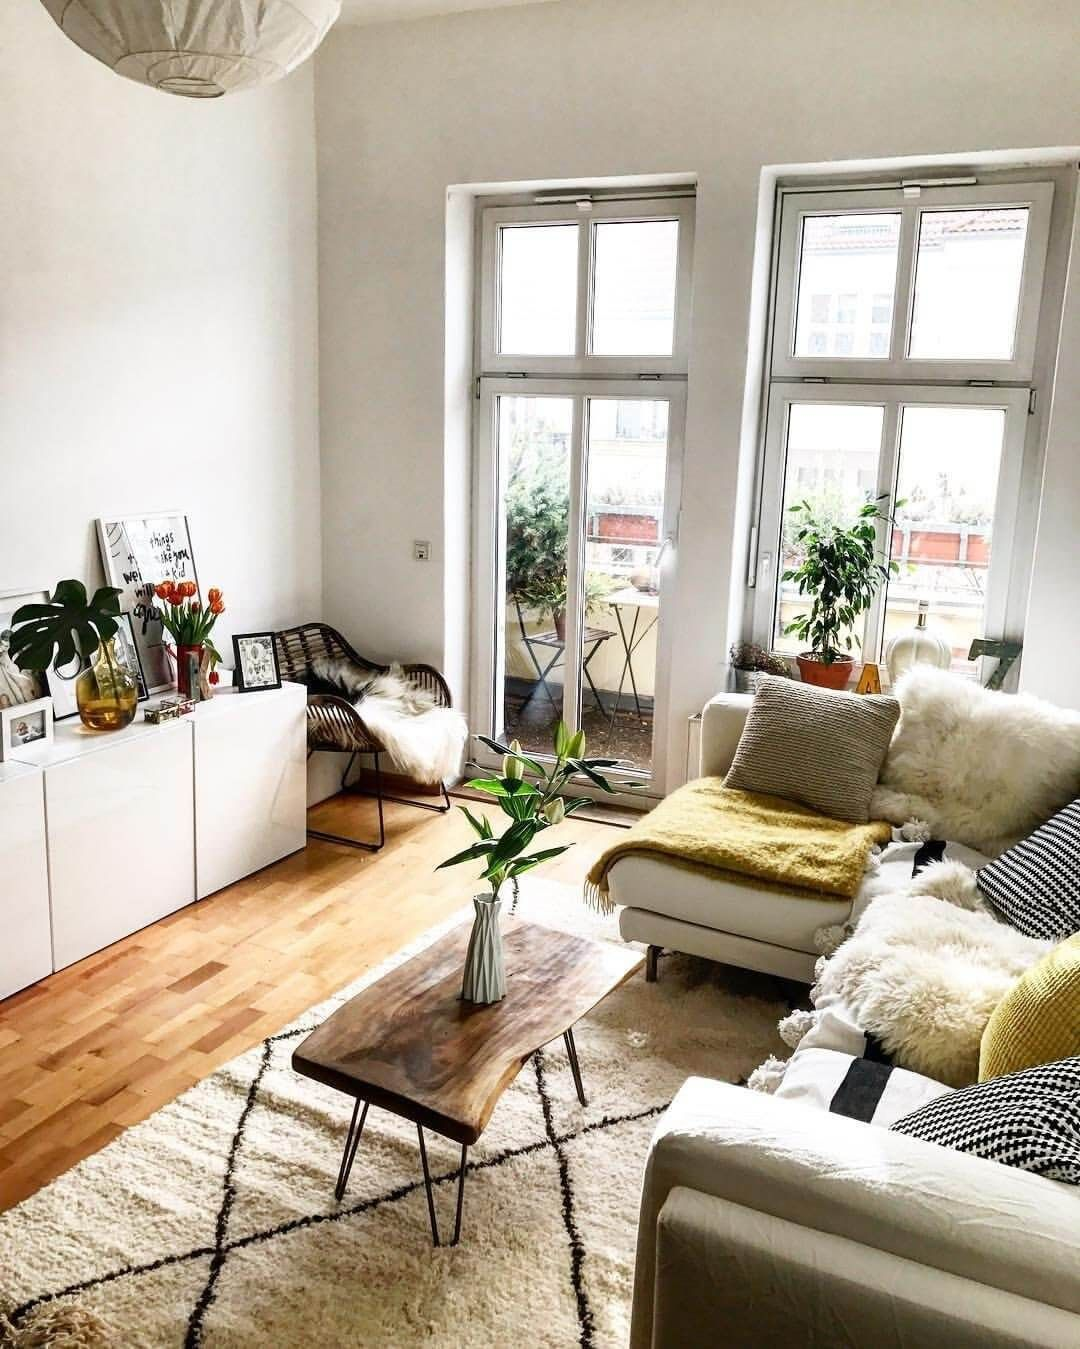 20 Small Apartment Living Room Design And Decor Ideas To